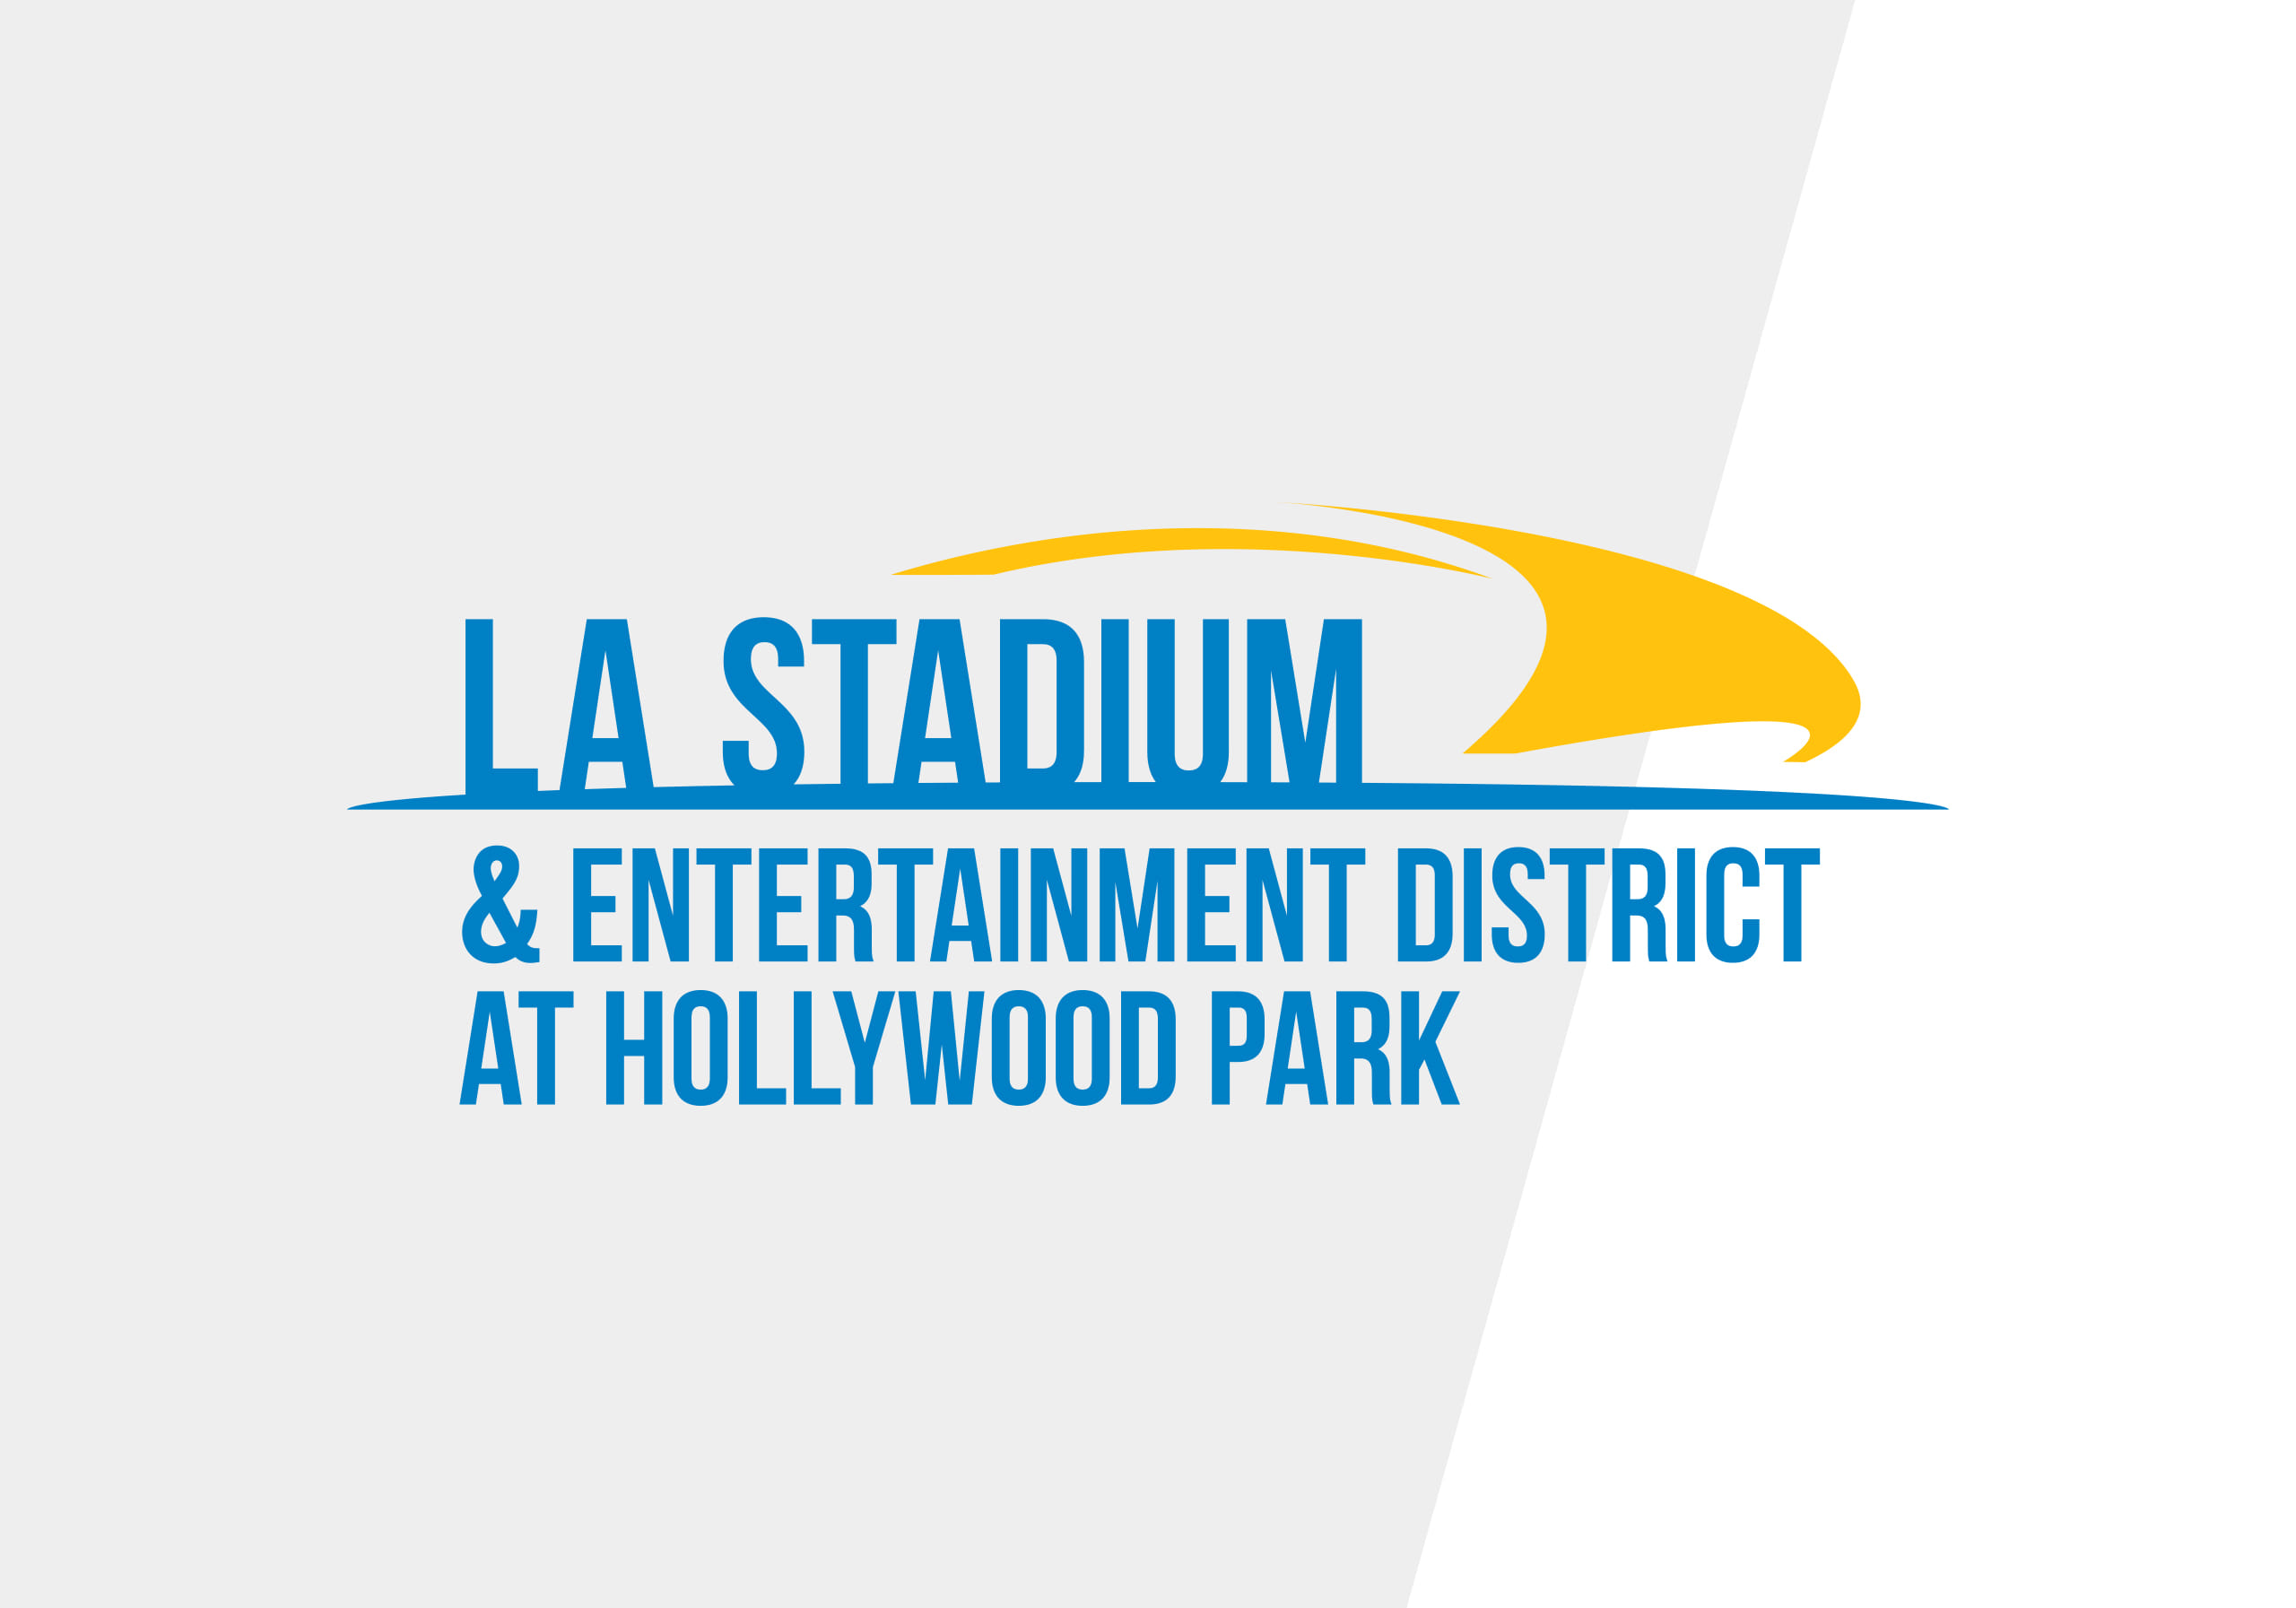 LA STADIUM AT HOLLYWOOD PARK